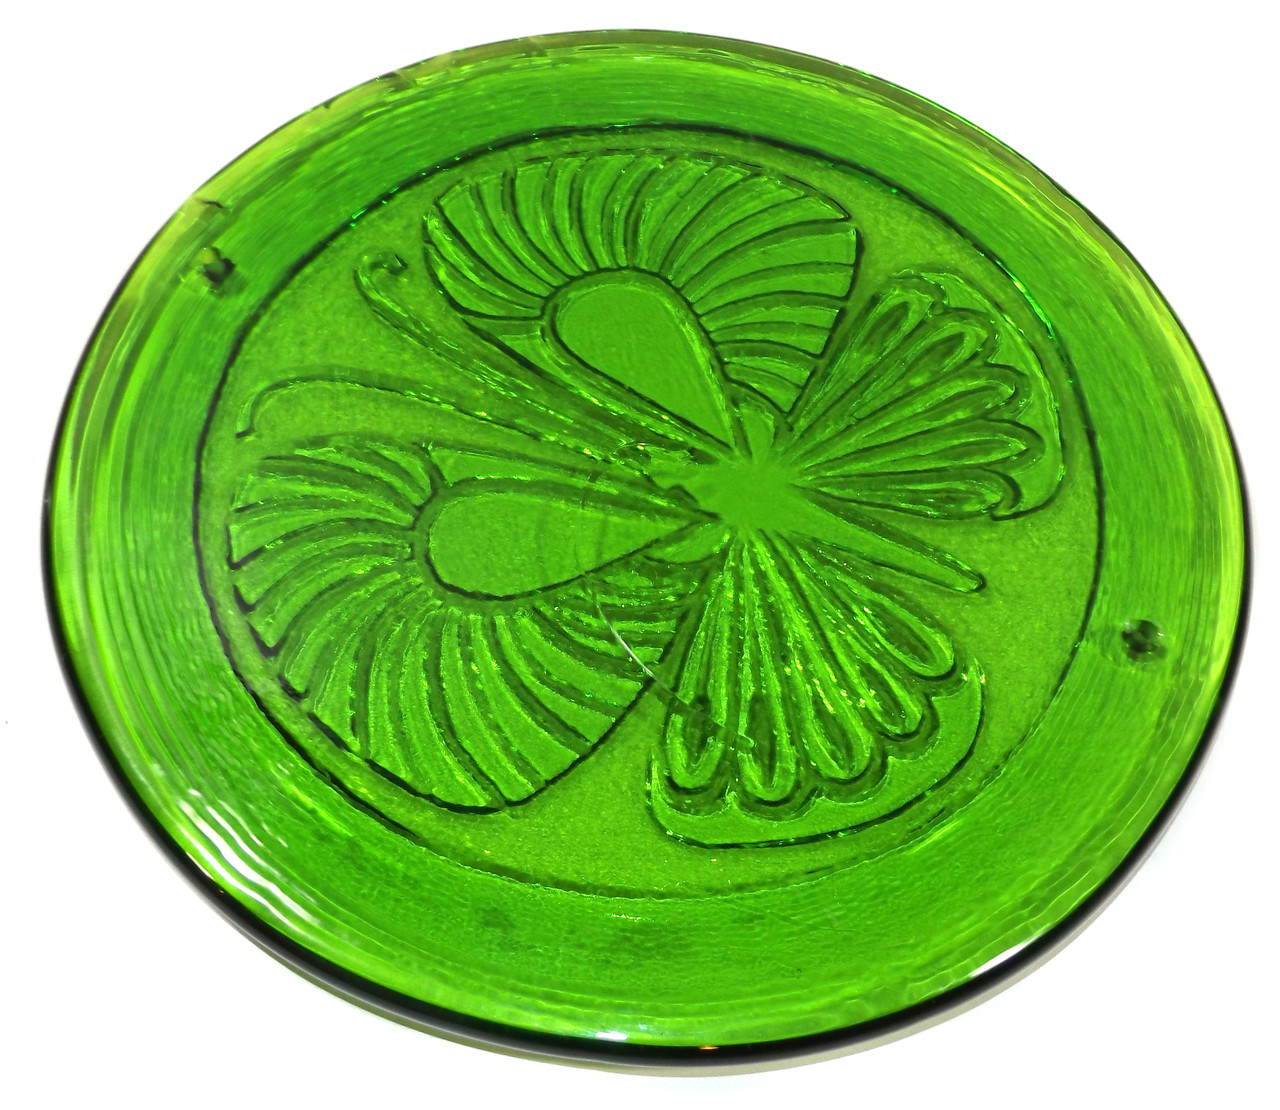 Retro Vintage Green Glass Hot Plate Trivet With Embossed Butterfly Design